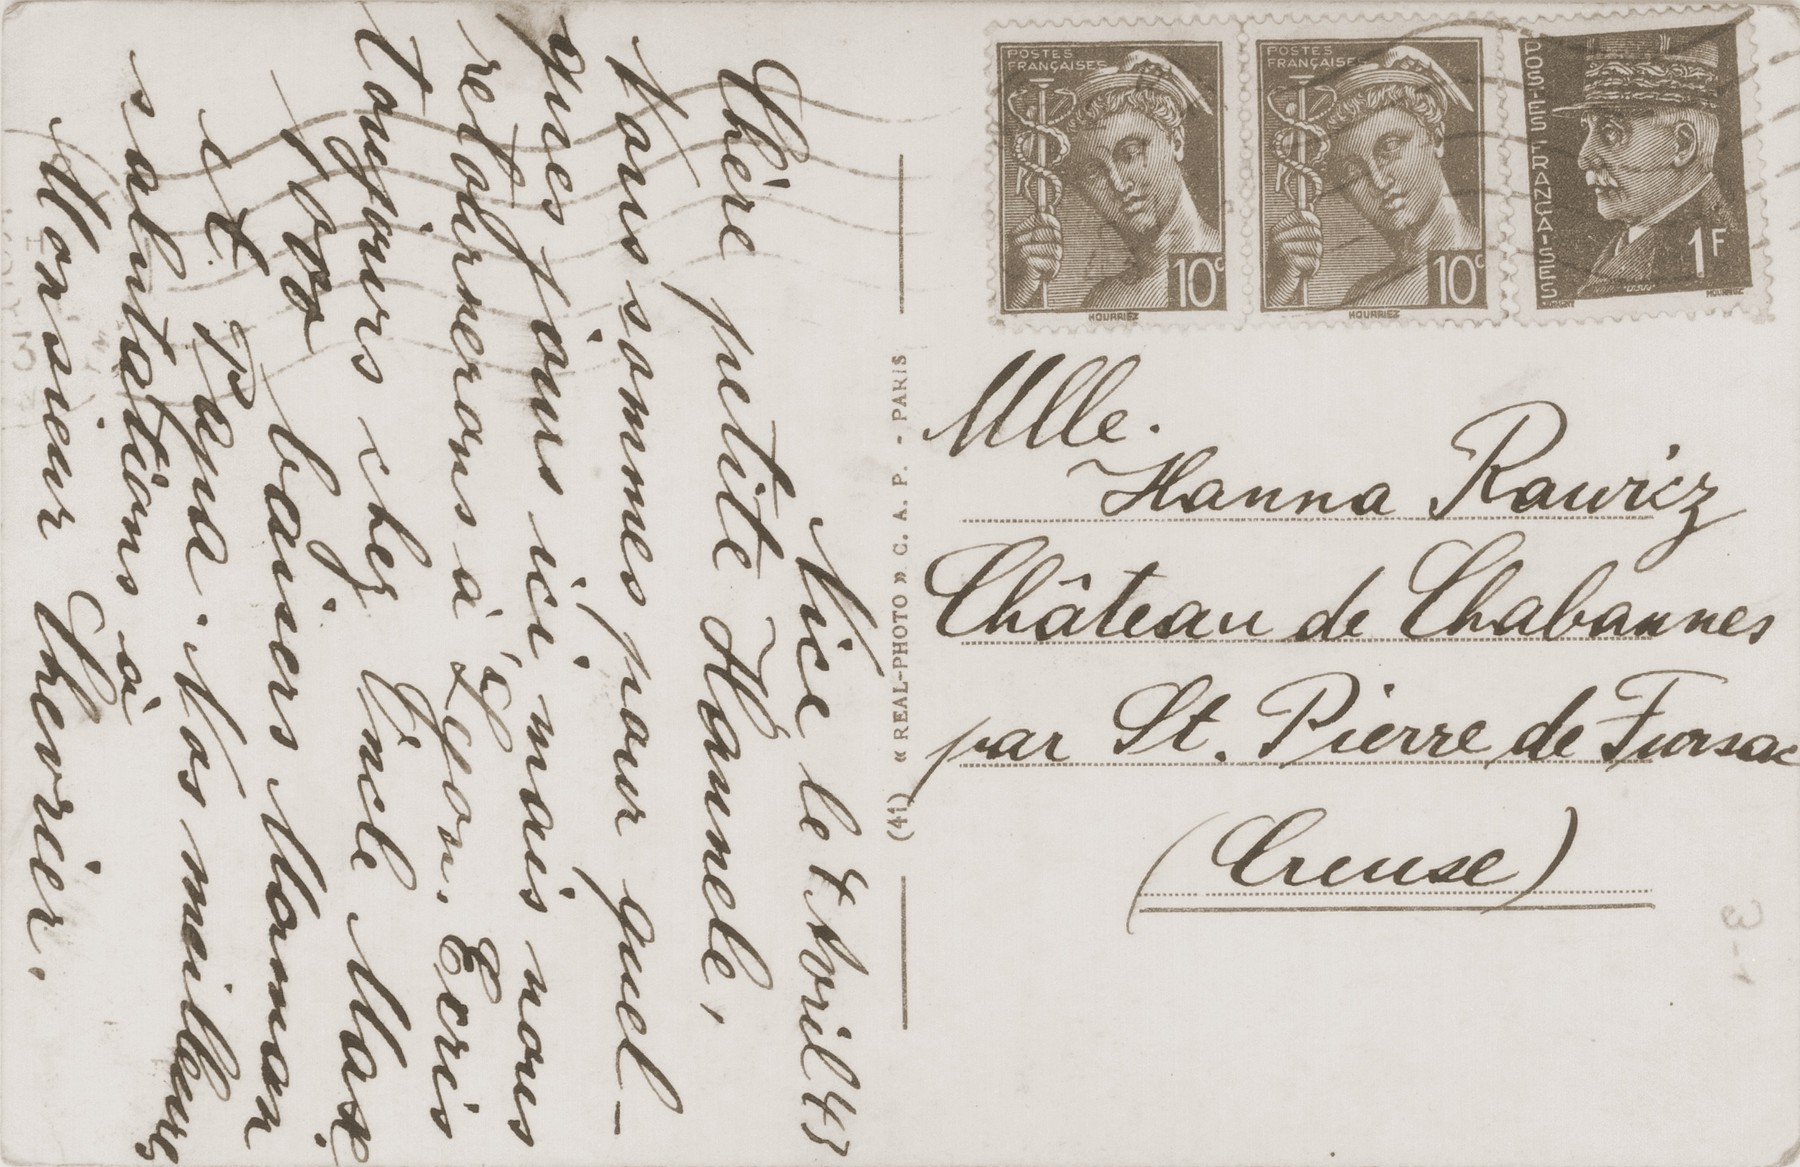 A postcard sent to Hanna Rawicz at the Château de Chabannes by her parents in Nice.